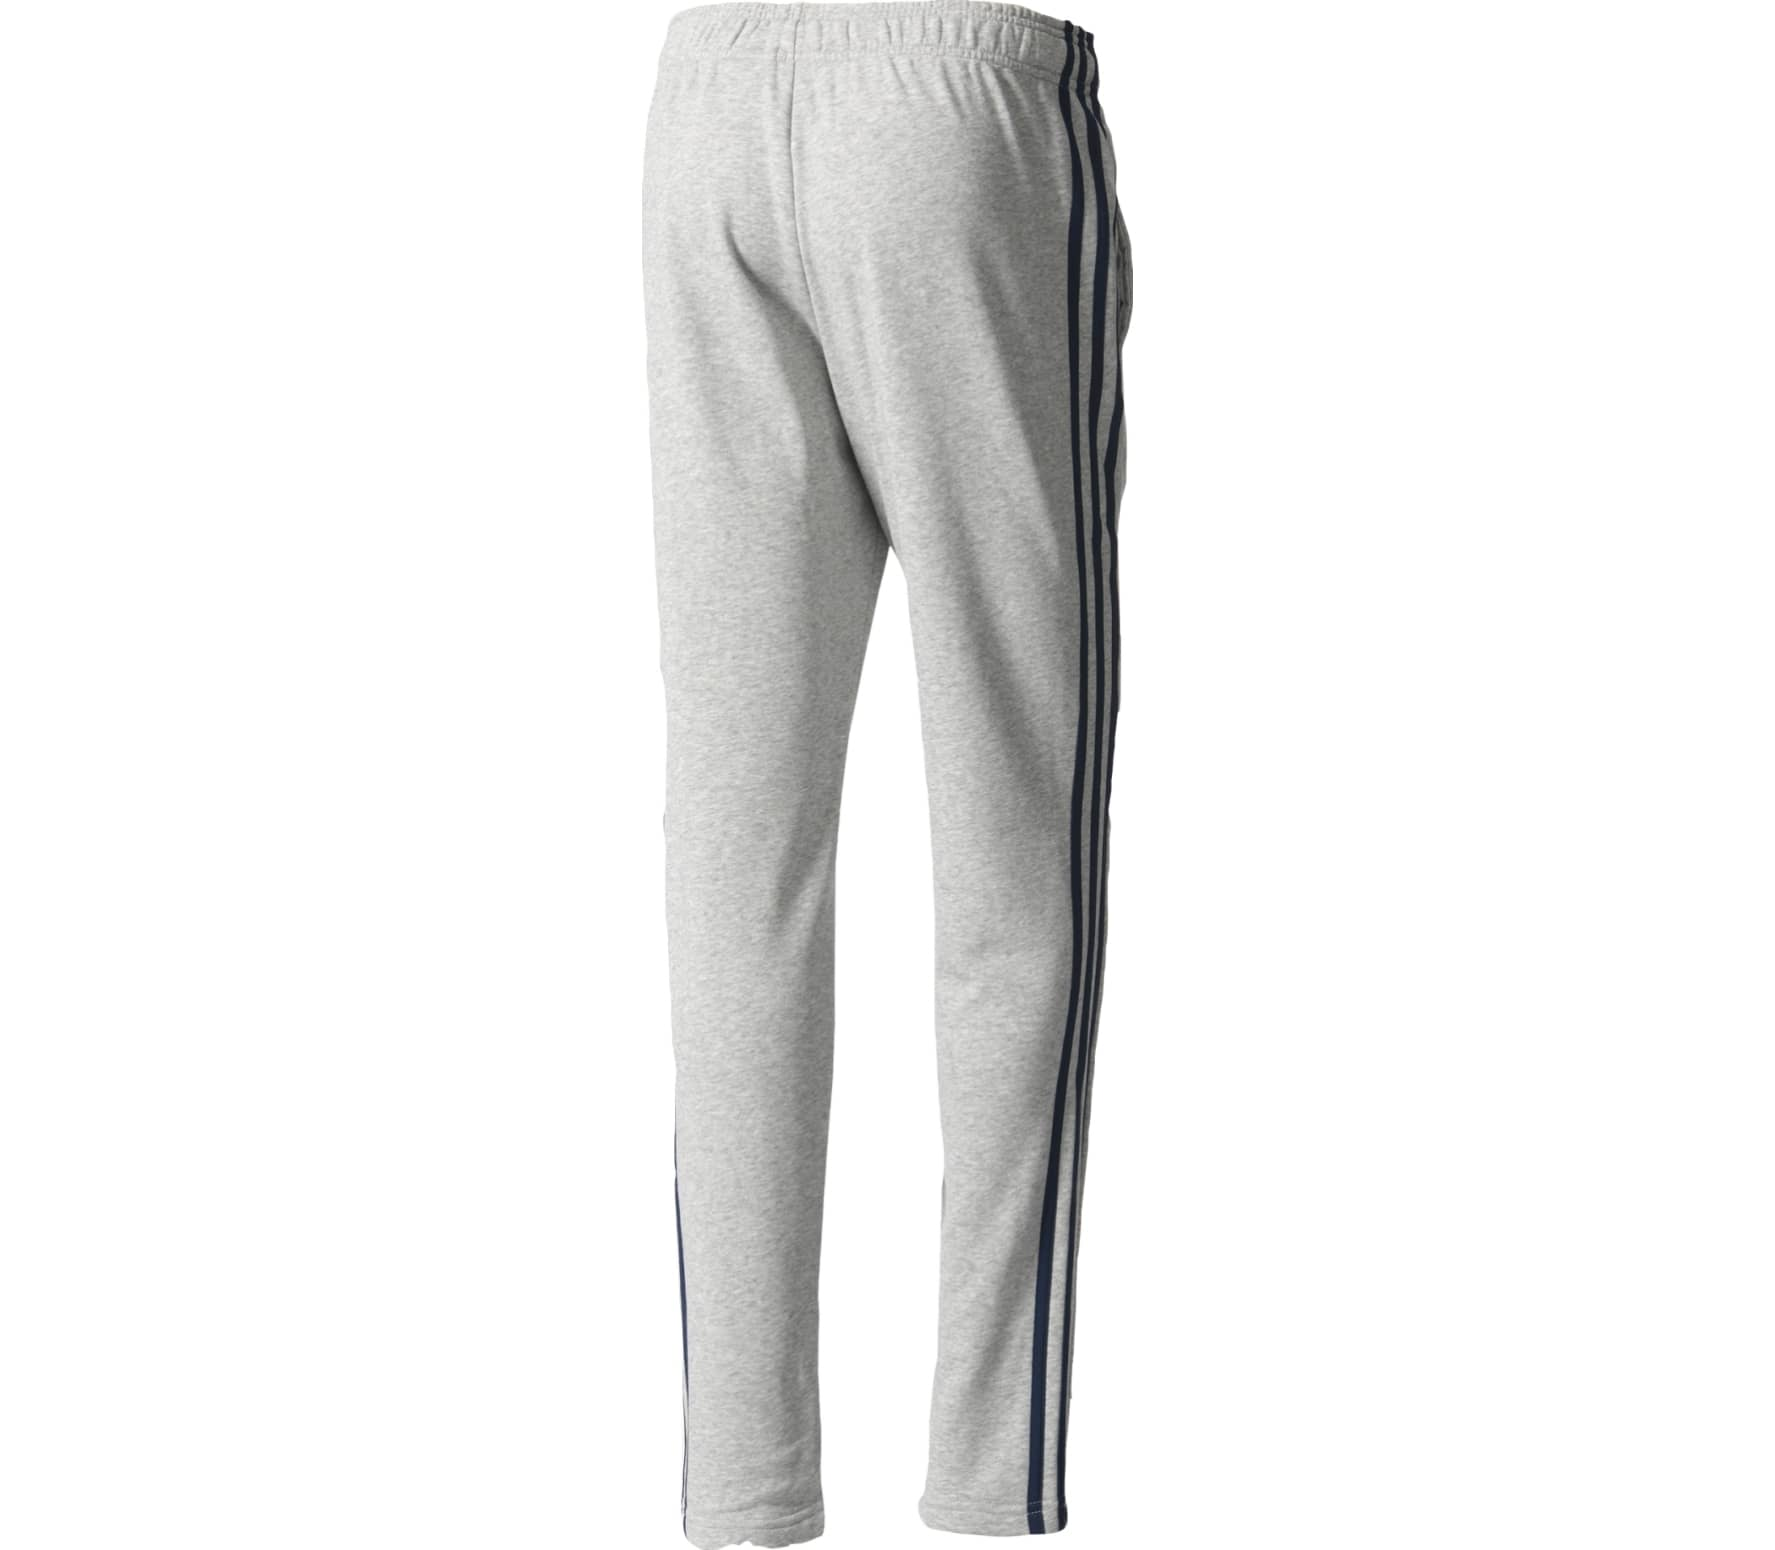 adidas Essentials 3 Stripes Tapered Herren silber